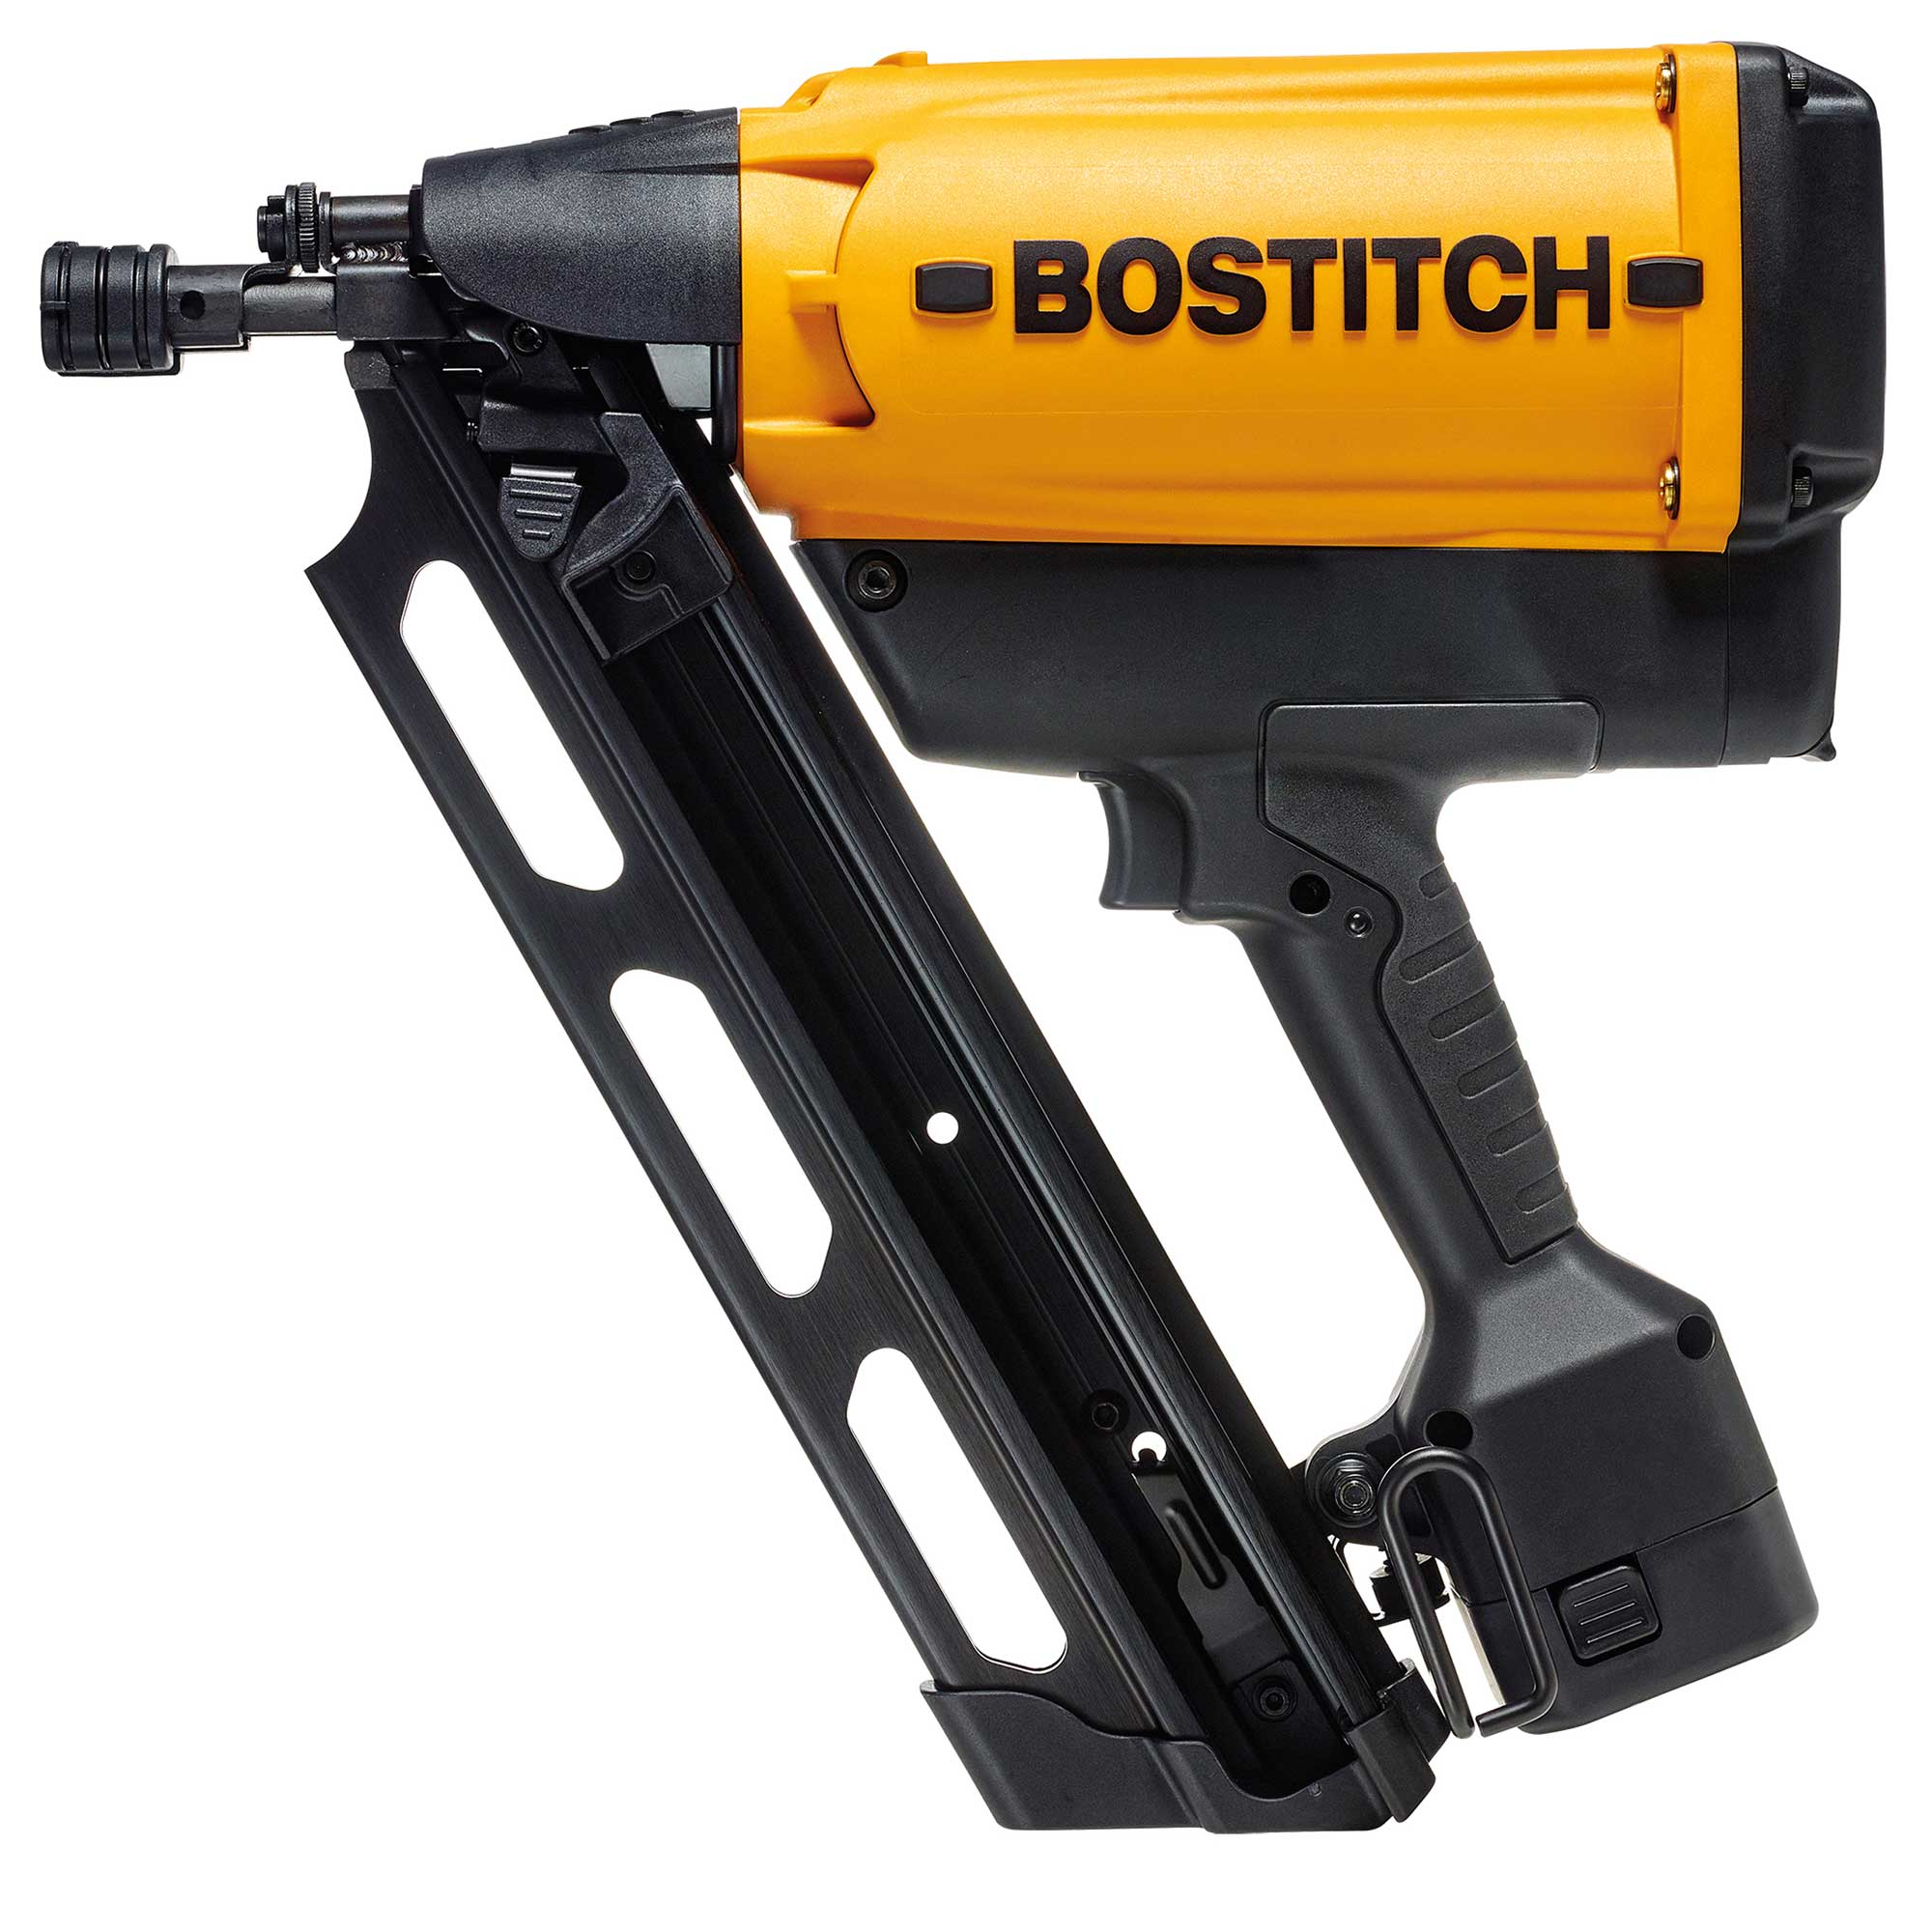 Bostitch (Stanley) GF9033-E | Bostitch Gas Cordless Framing Nailer